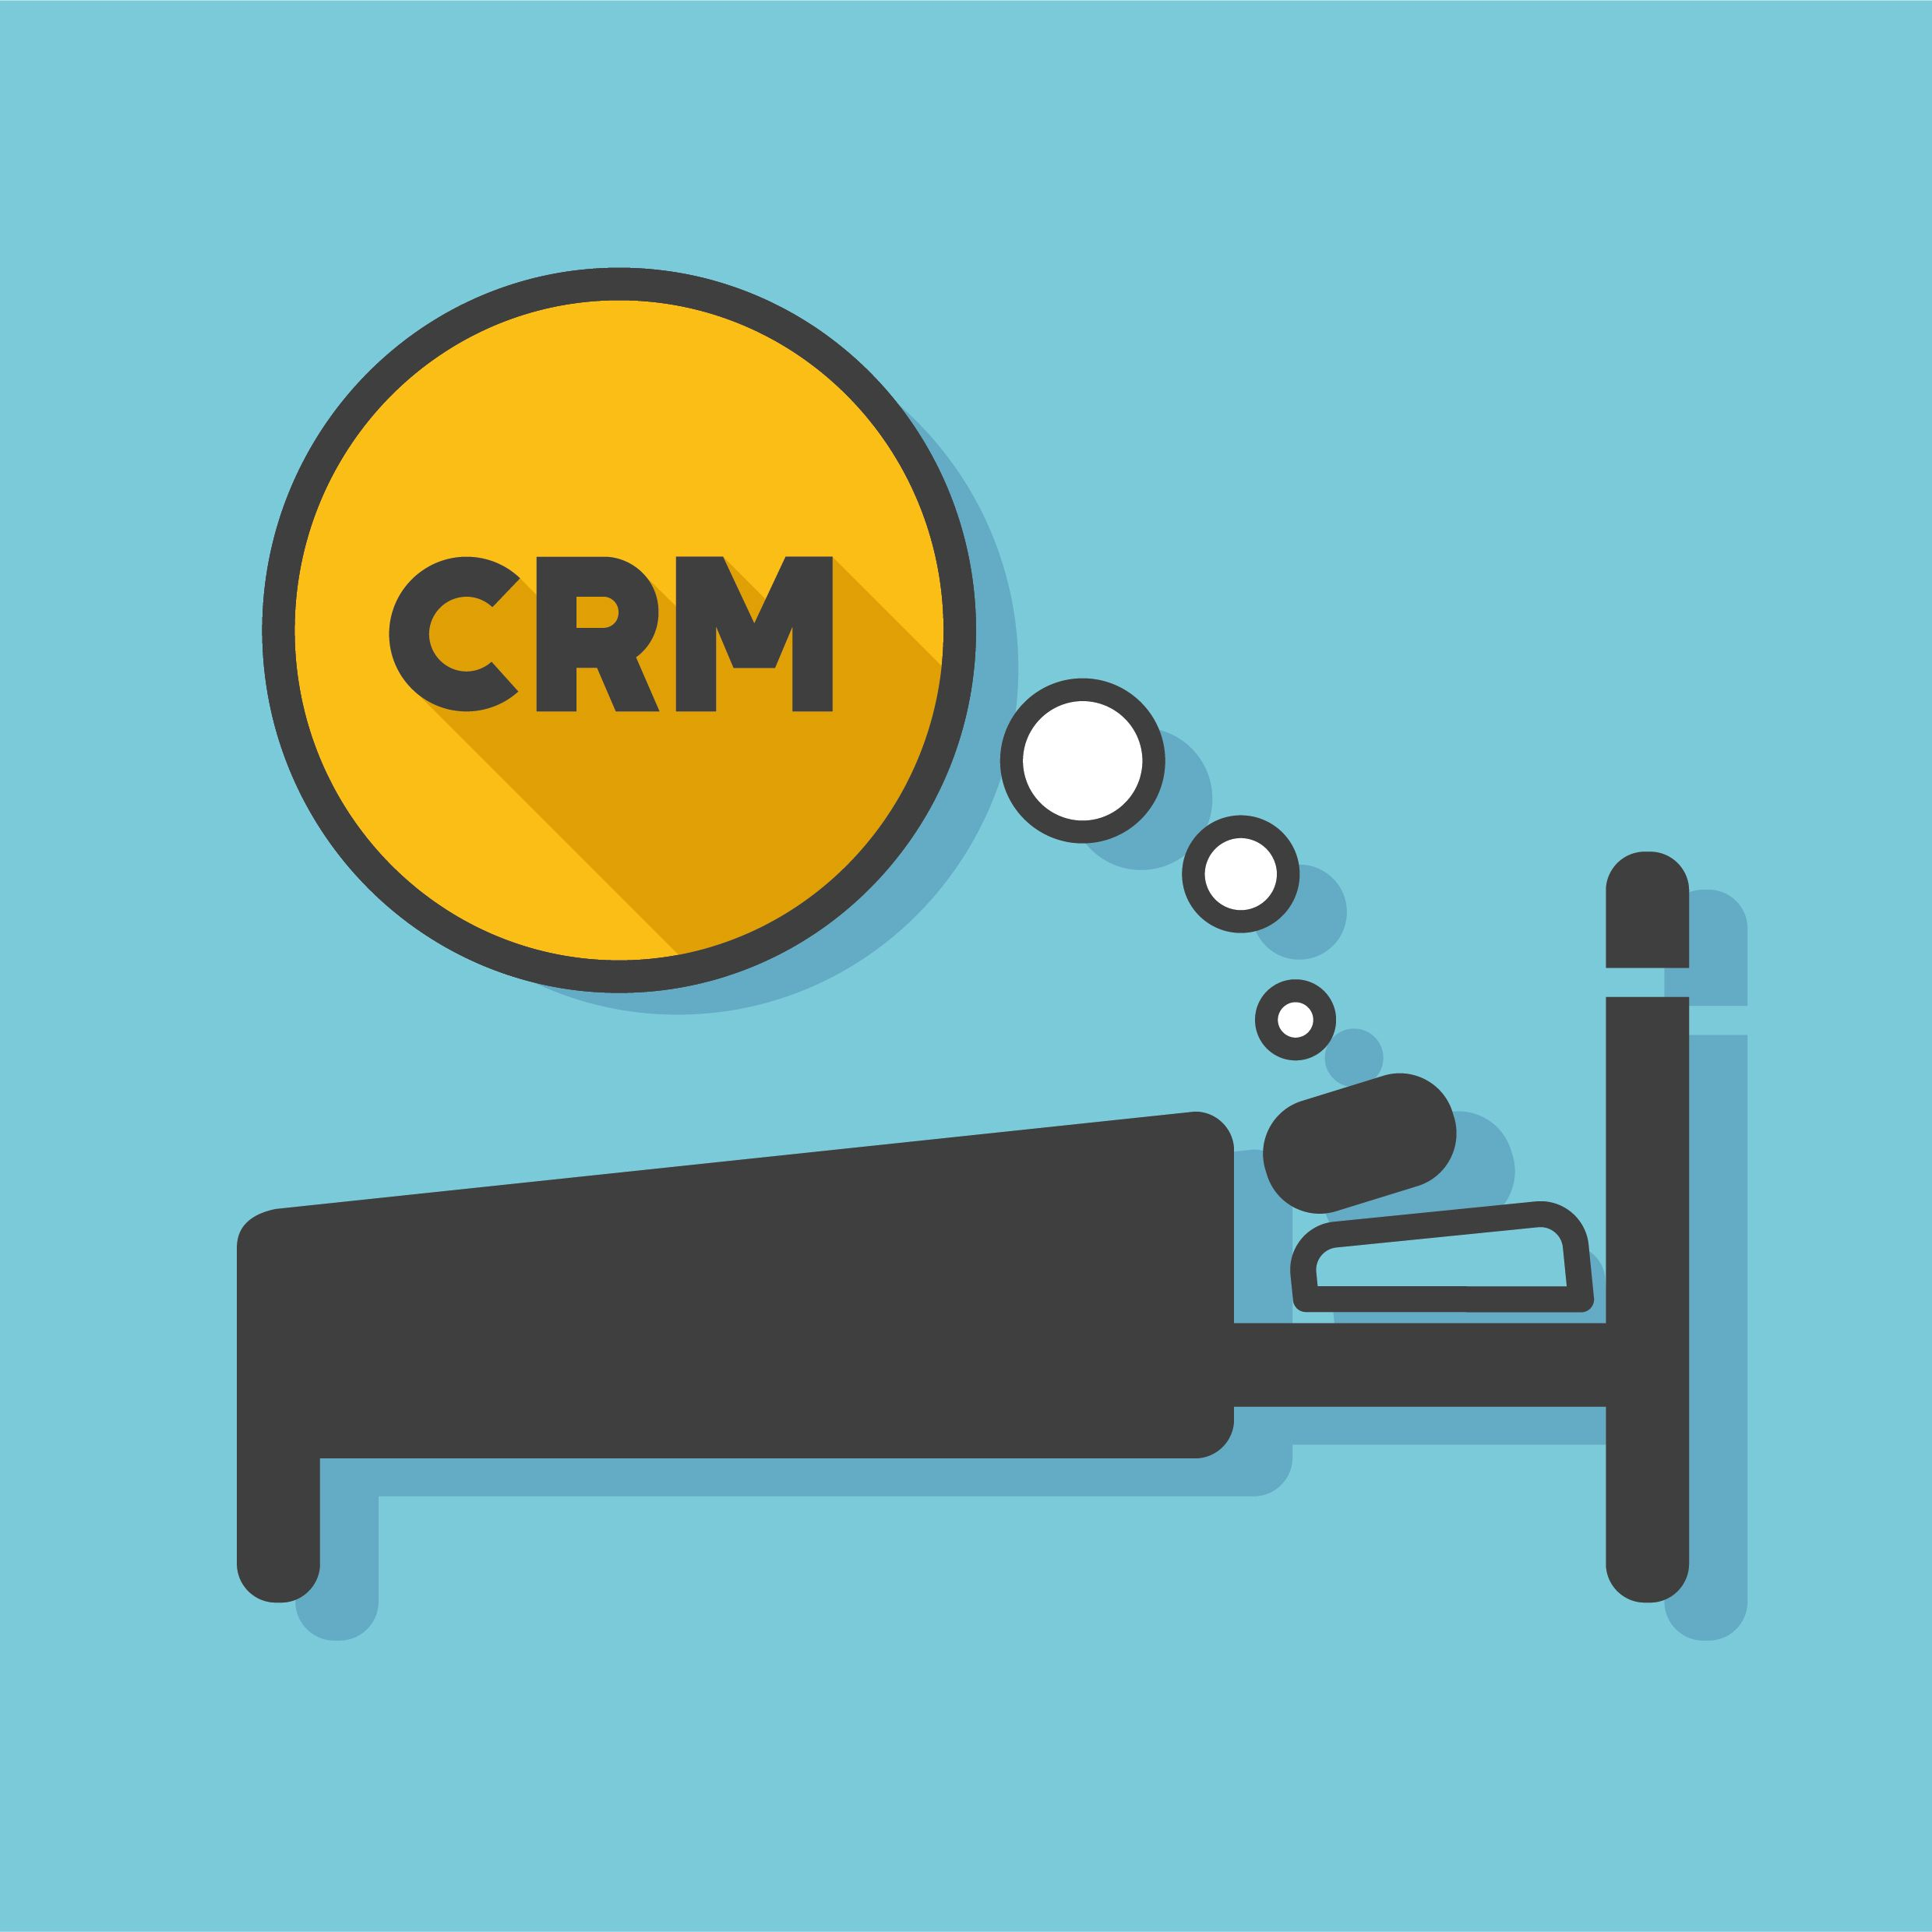 Marketing relacional con un CRM